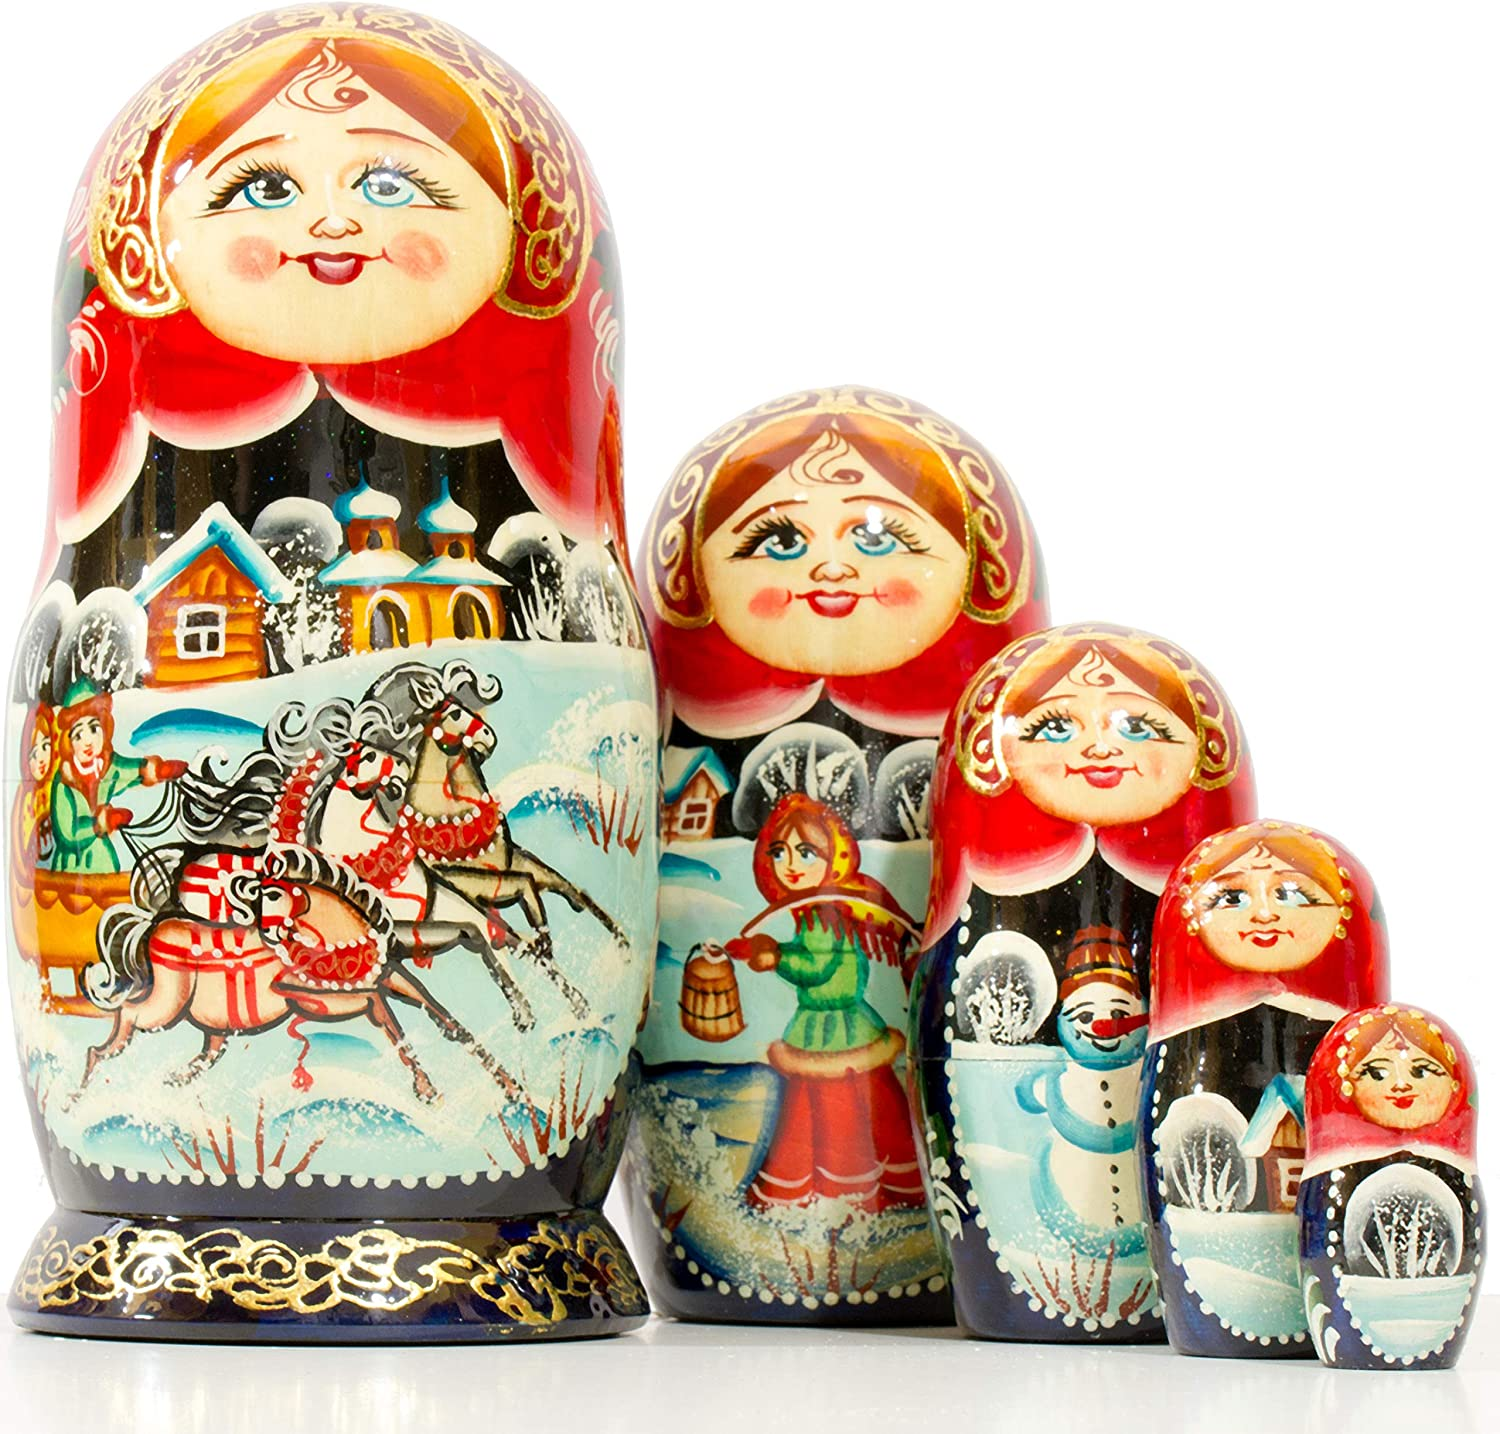 Russian Nesting Doll - Village Max 2021 autumn and winter new 83% OFF in Russia Scenes Painted Hand